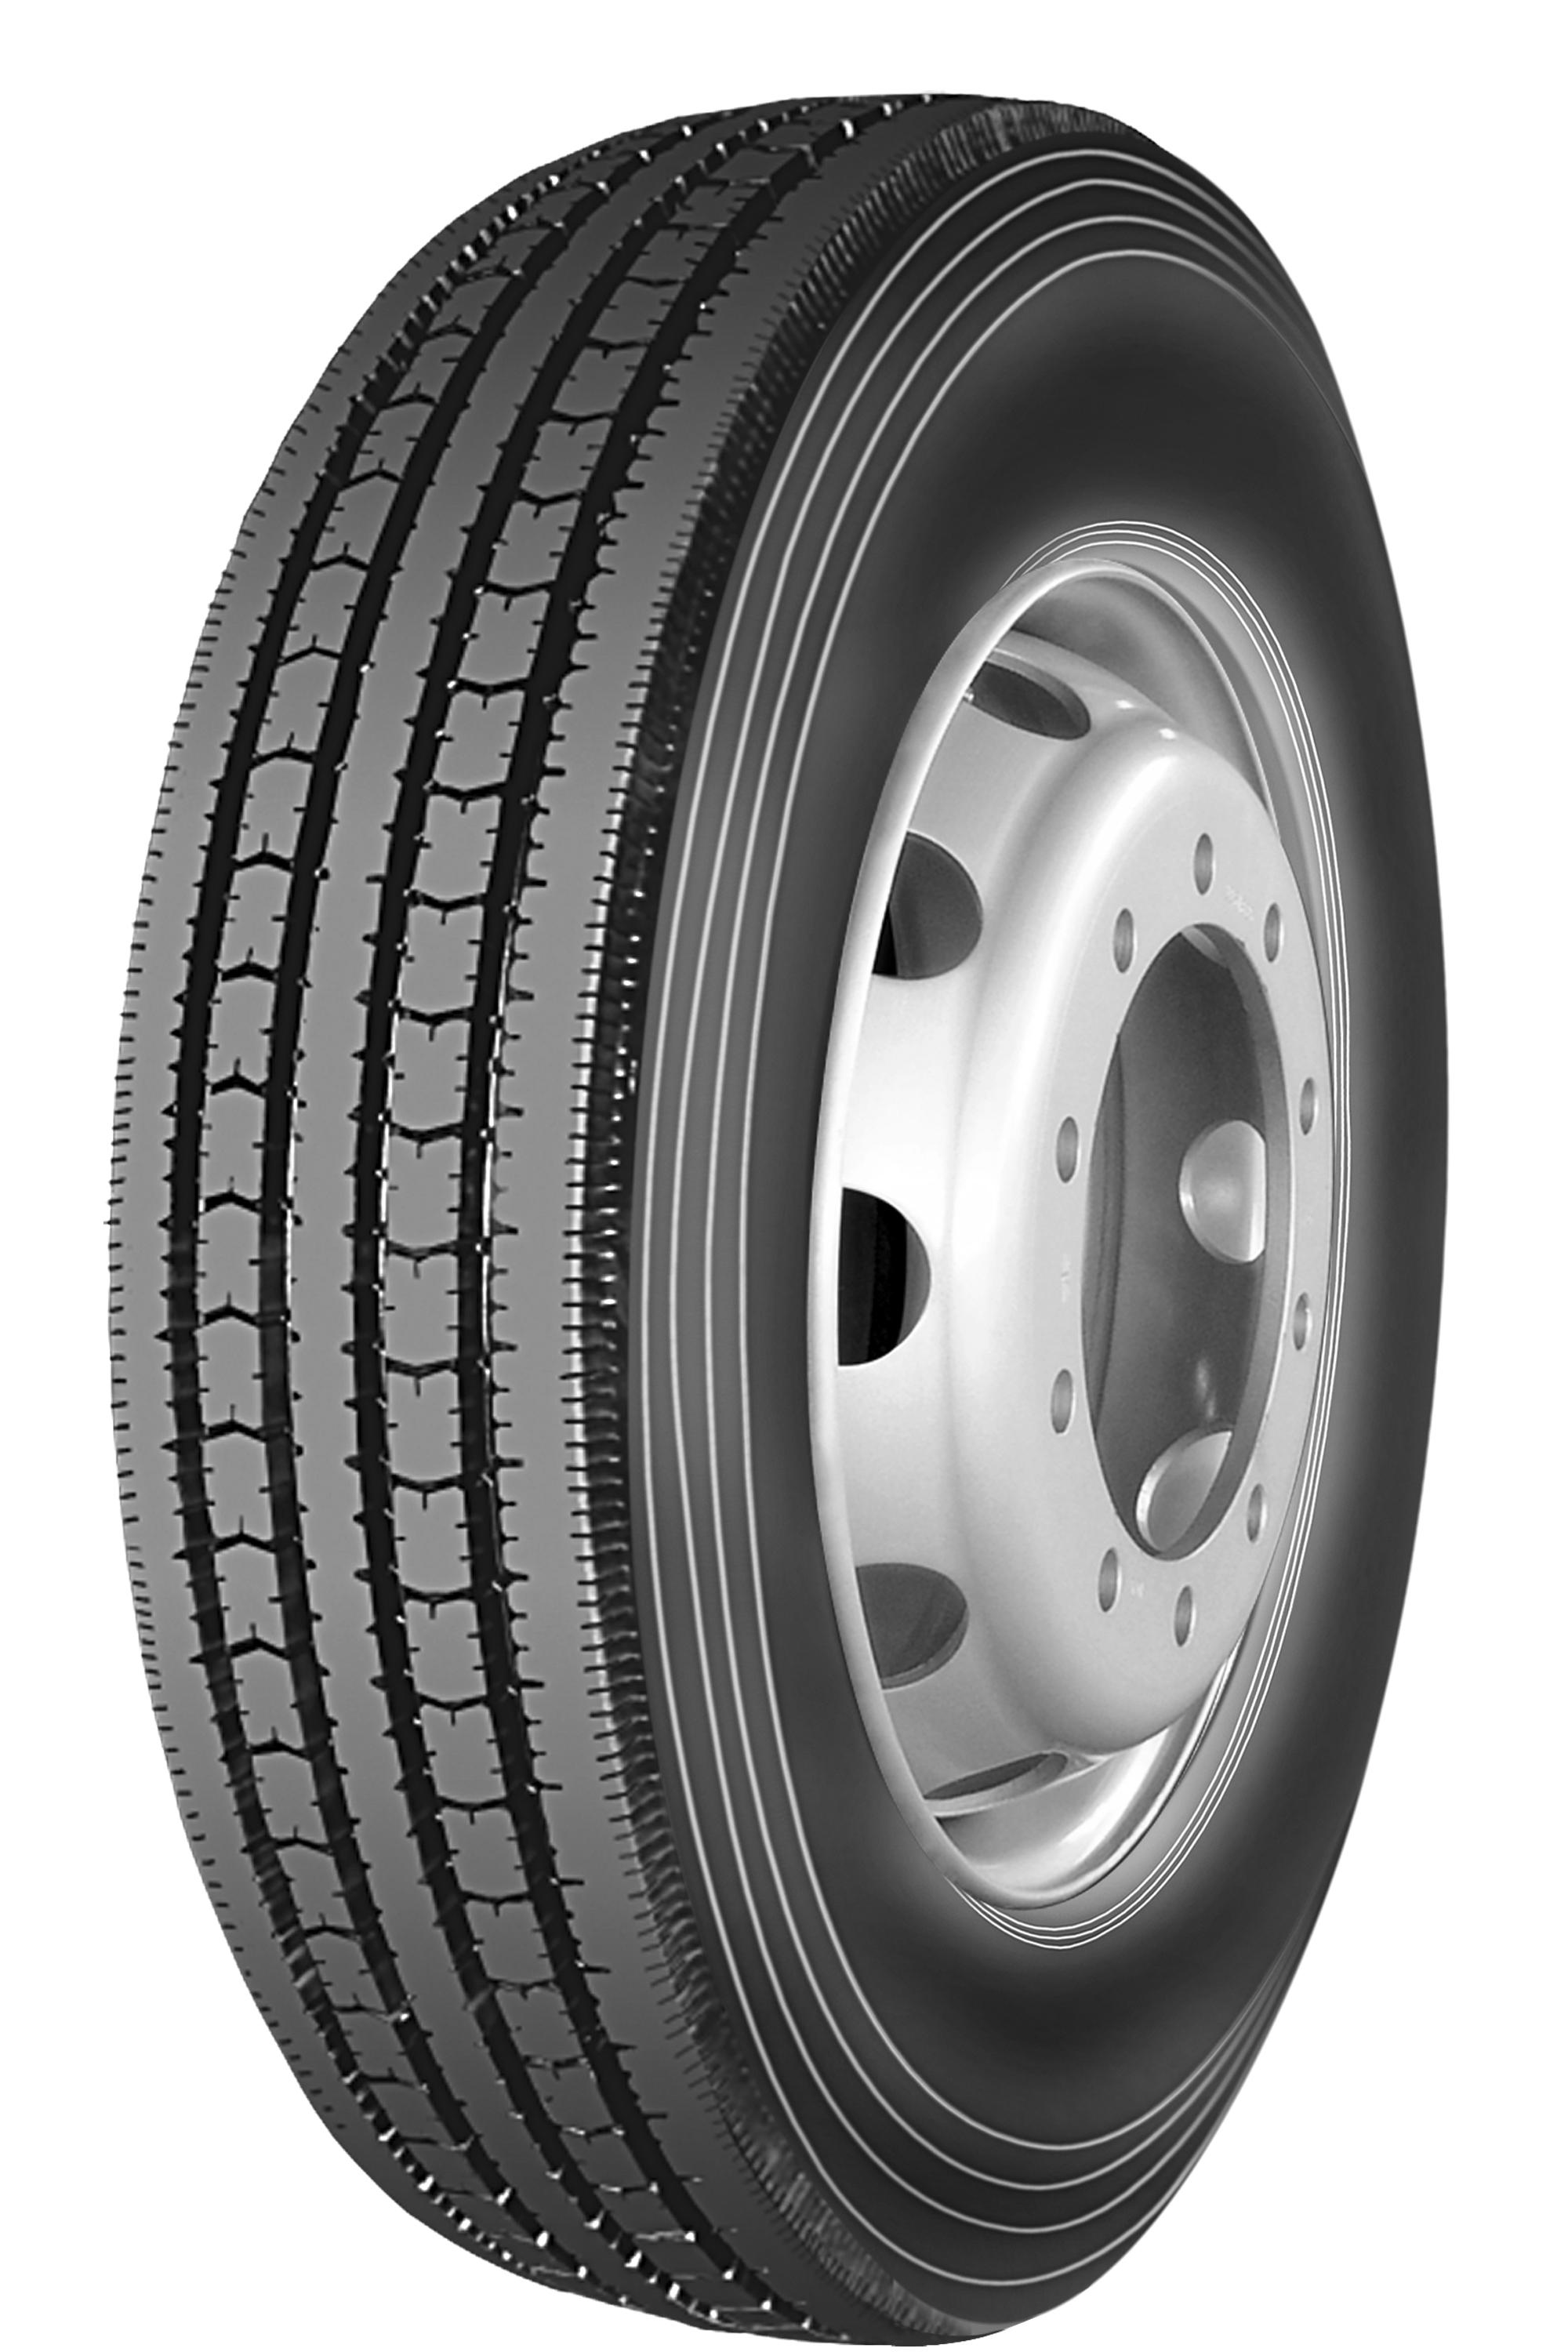 LM216 ALL STEEL RADIAL TRUCK AND BUS TYRES